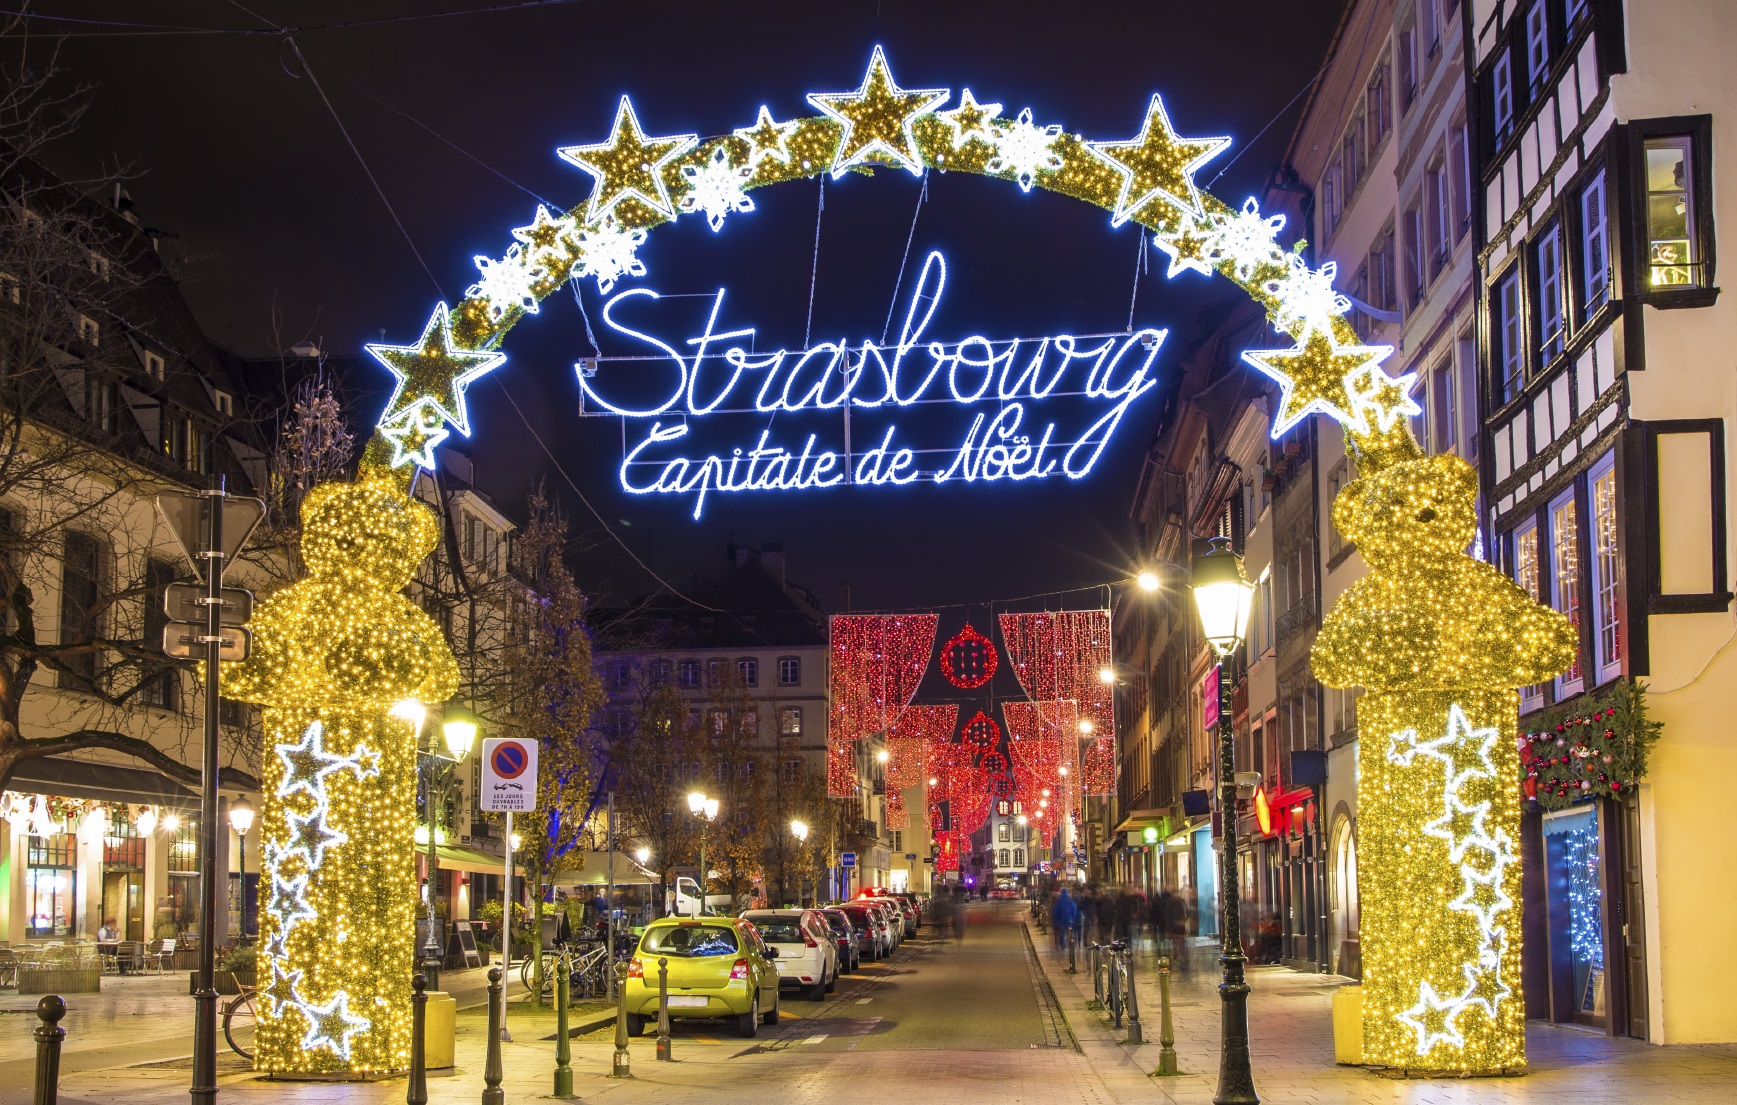 City Centre Strasbourg Christmas Market LocalBini BiniBlog Beyond Travelling Travel 2016 Europe Holidays Gifts Shopping